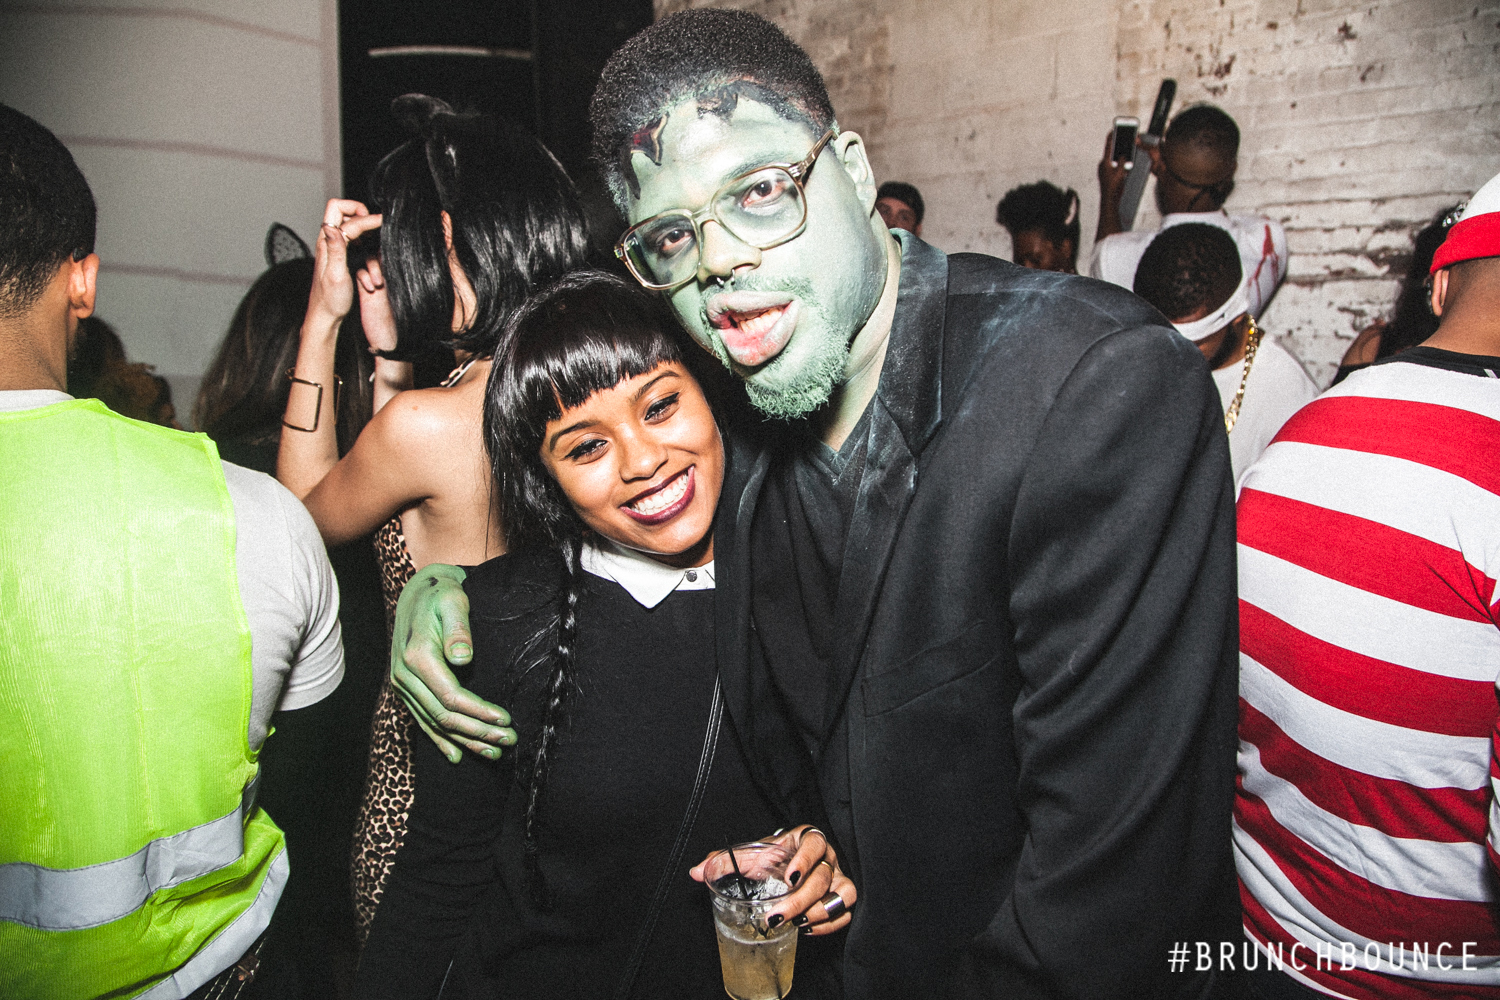 brunch-bounce-x-adidas-originals-halloween-103115_22729057026_o.jpg